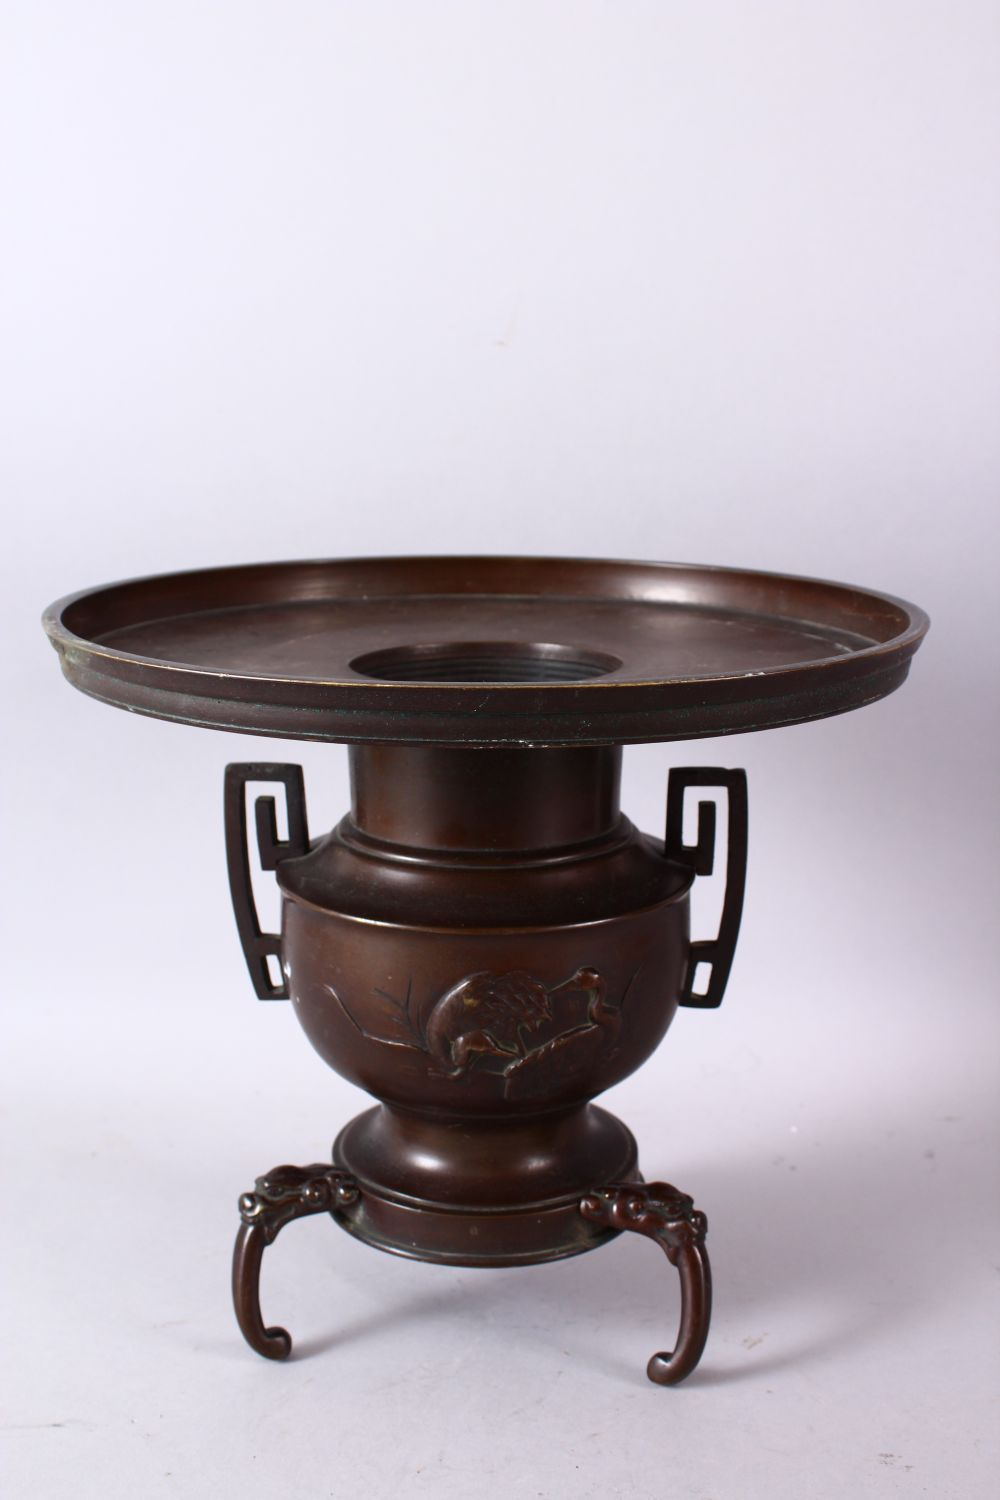 A 19TH CENTURY JAPANESE BRONZE TWO HANDLED VASE on three curving legs, with large circular top - Image 4 of 6